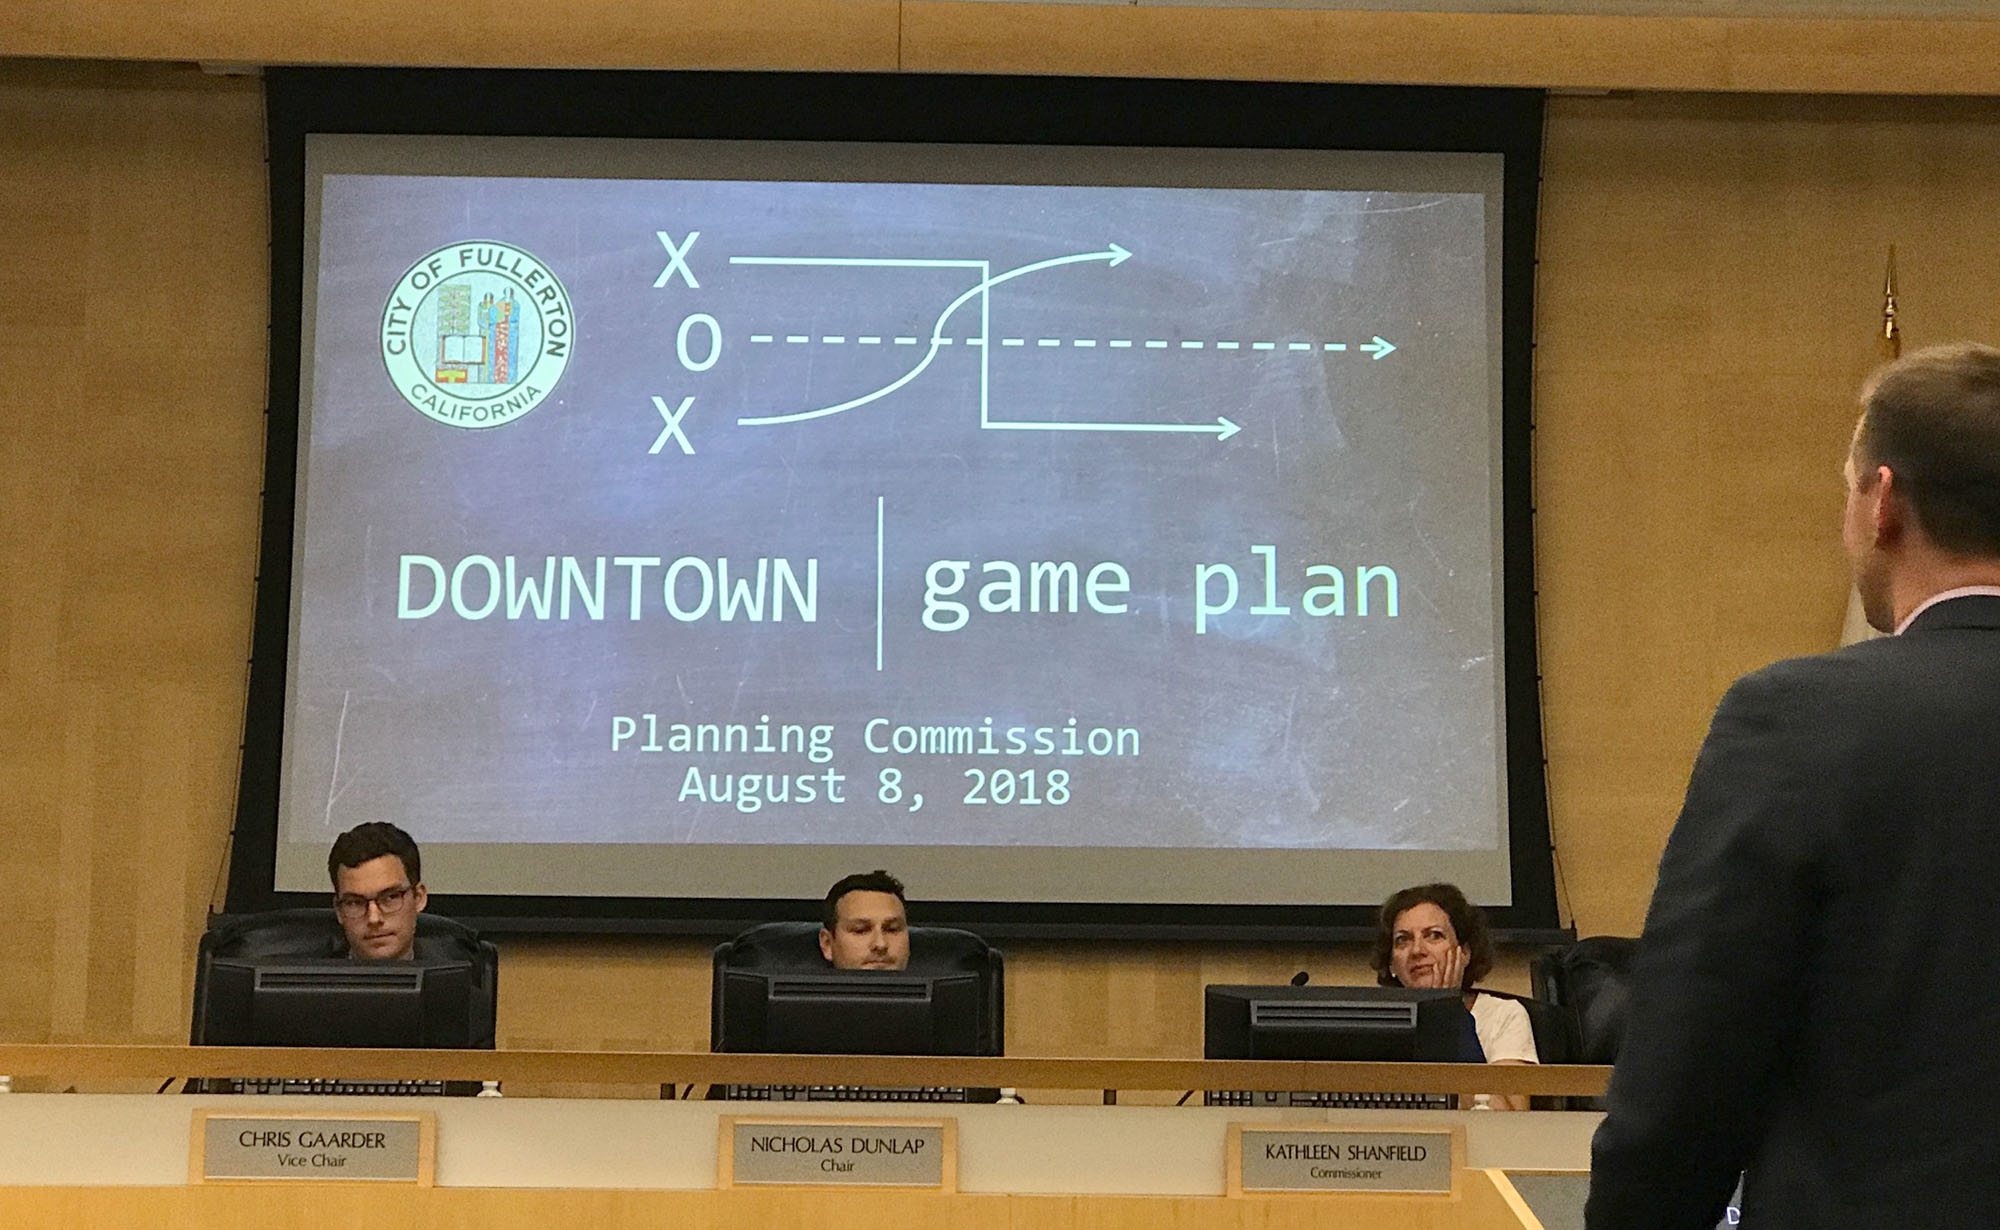 New Bar Rules Proposed for Downtown Fullerton - Fullerton